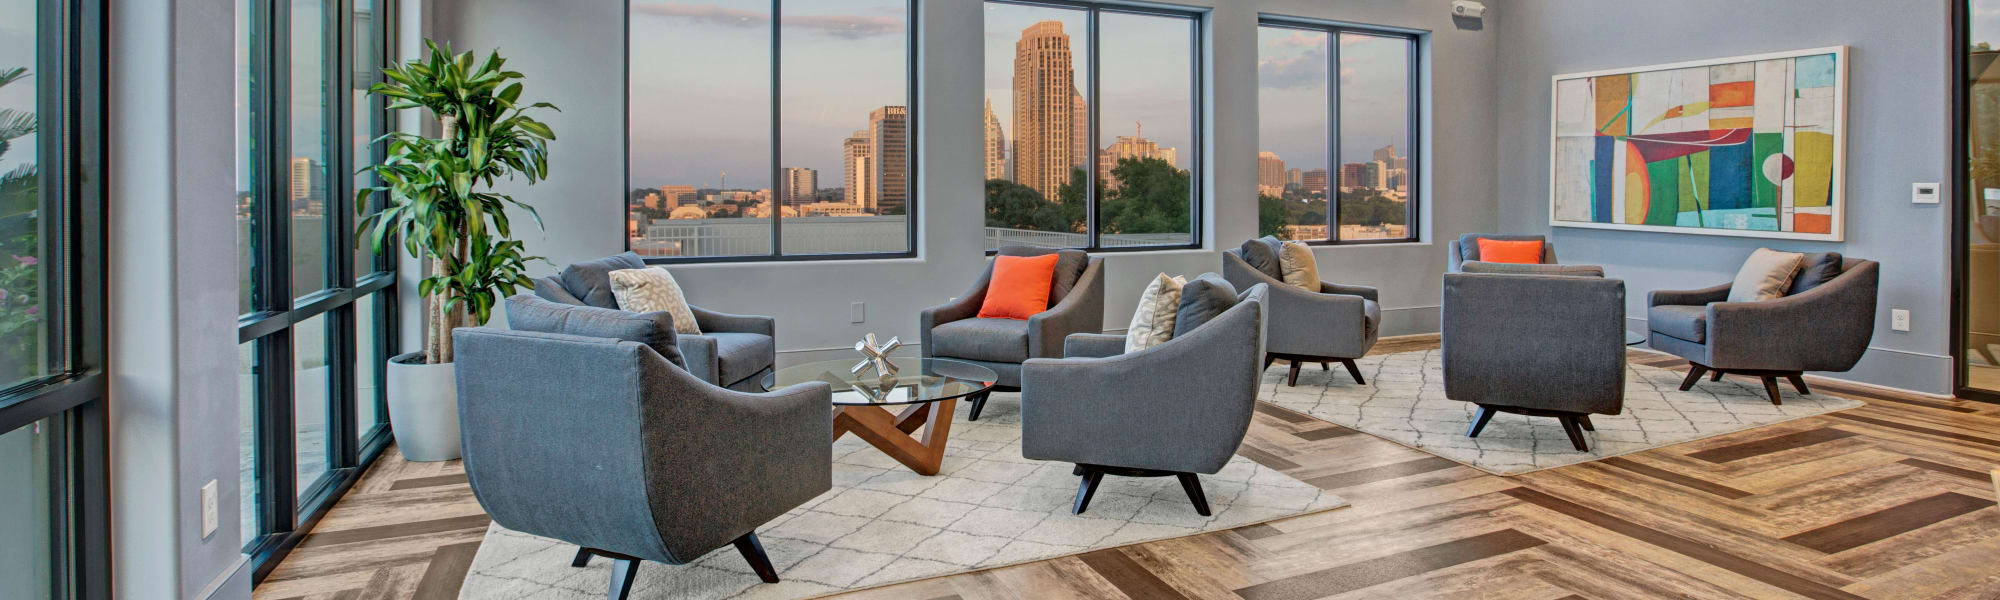 Schedule a tour of Mark at West Midtown in Atlanta, Georgia